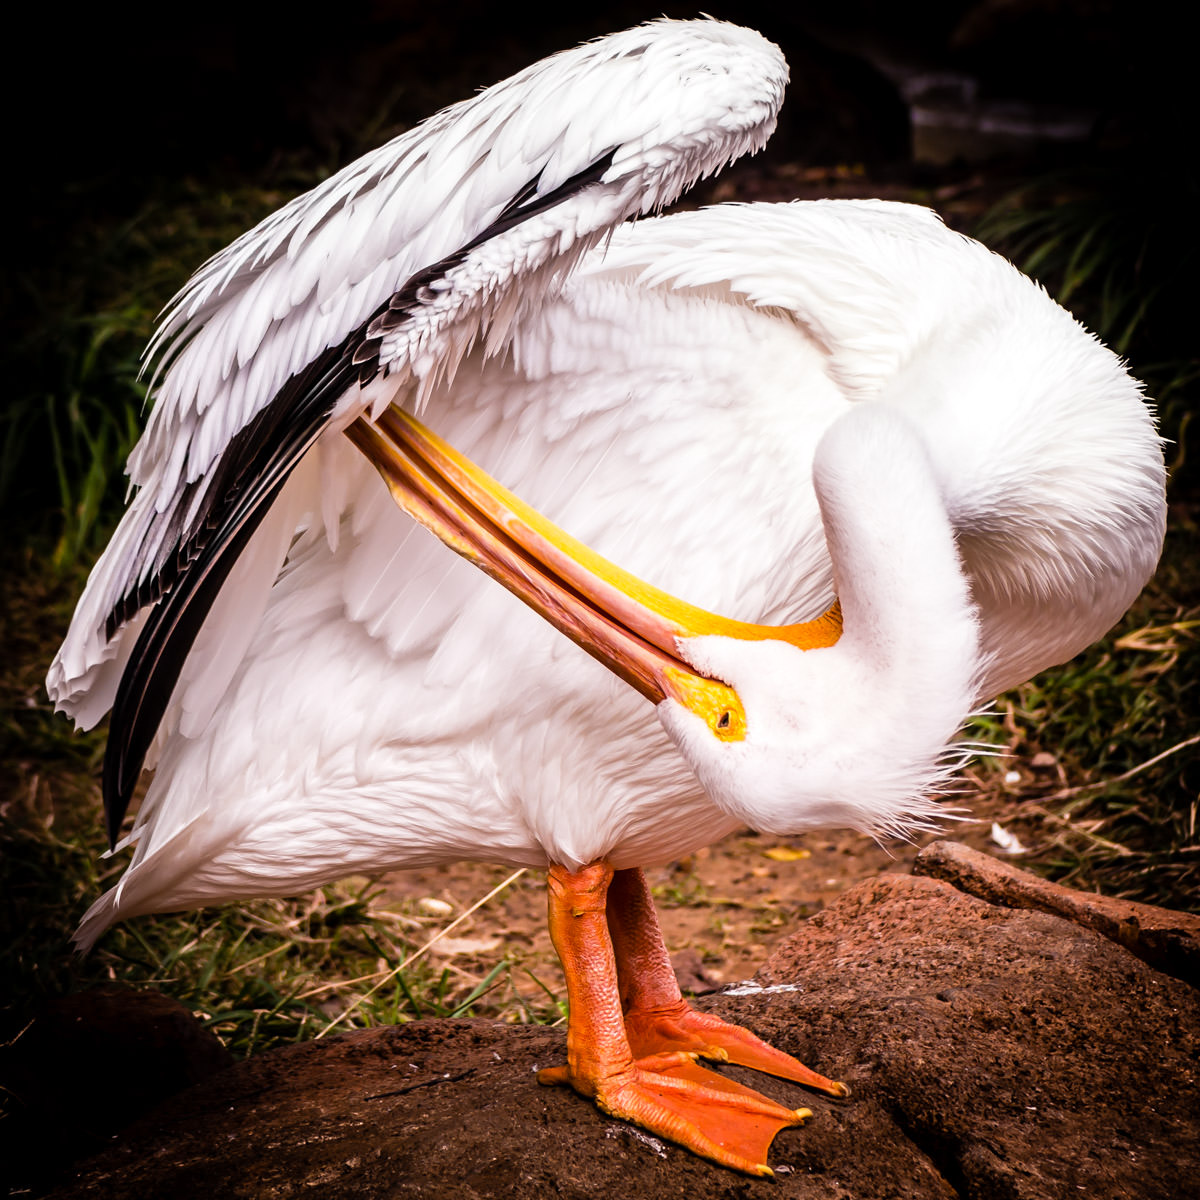 A pelican preens itself at Tyler, Texas' Caldwell Zoo.